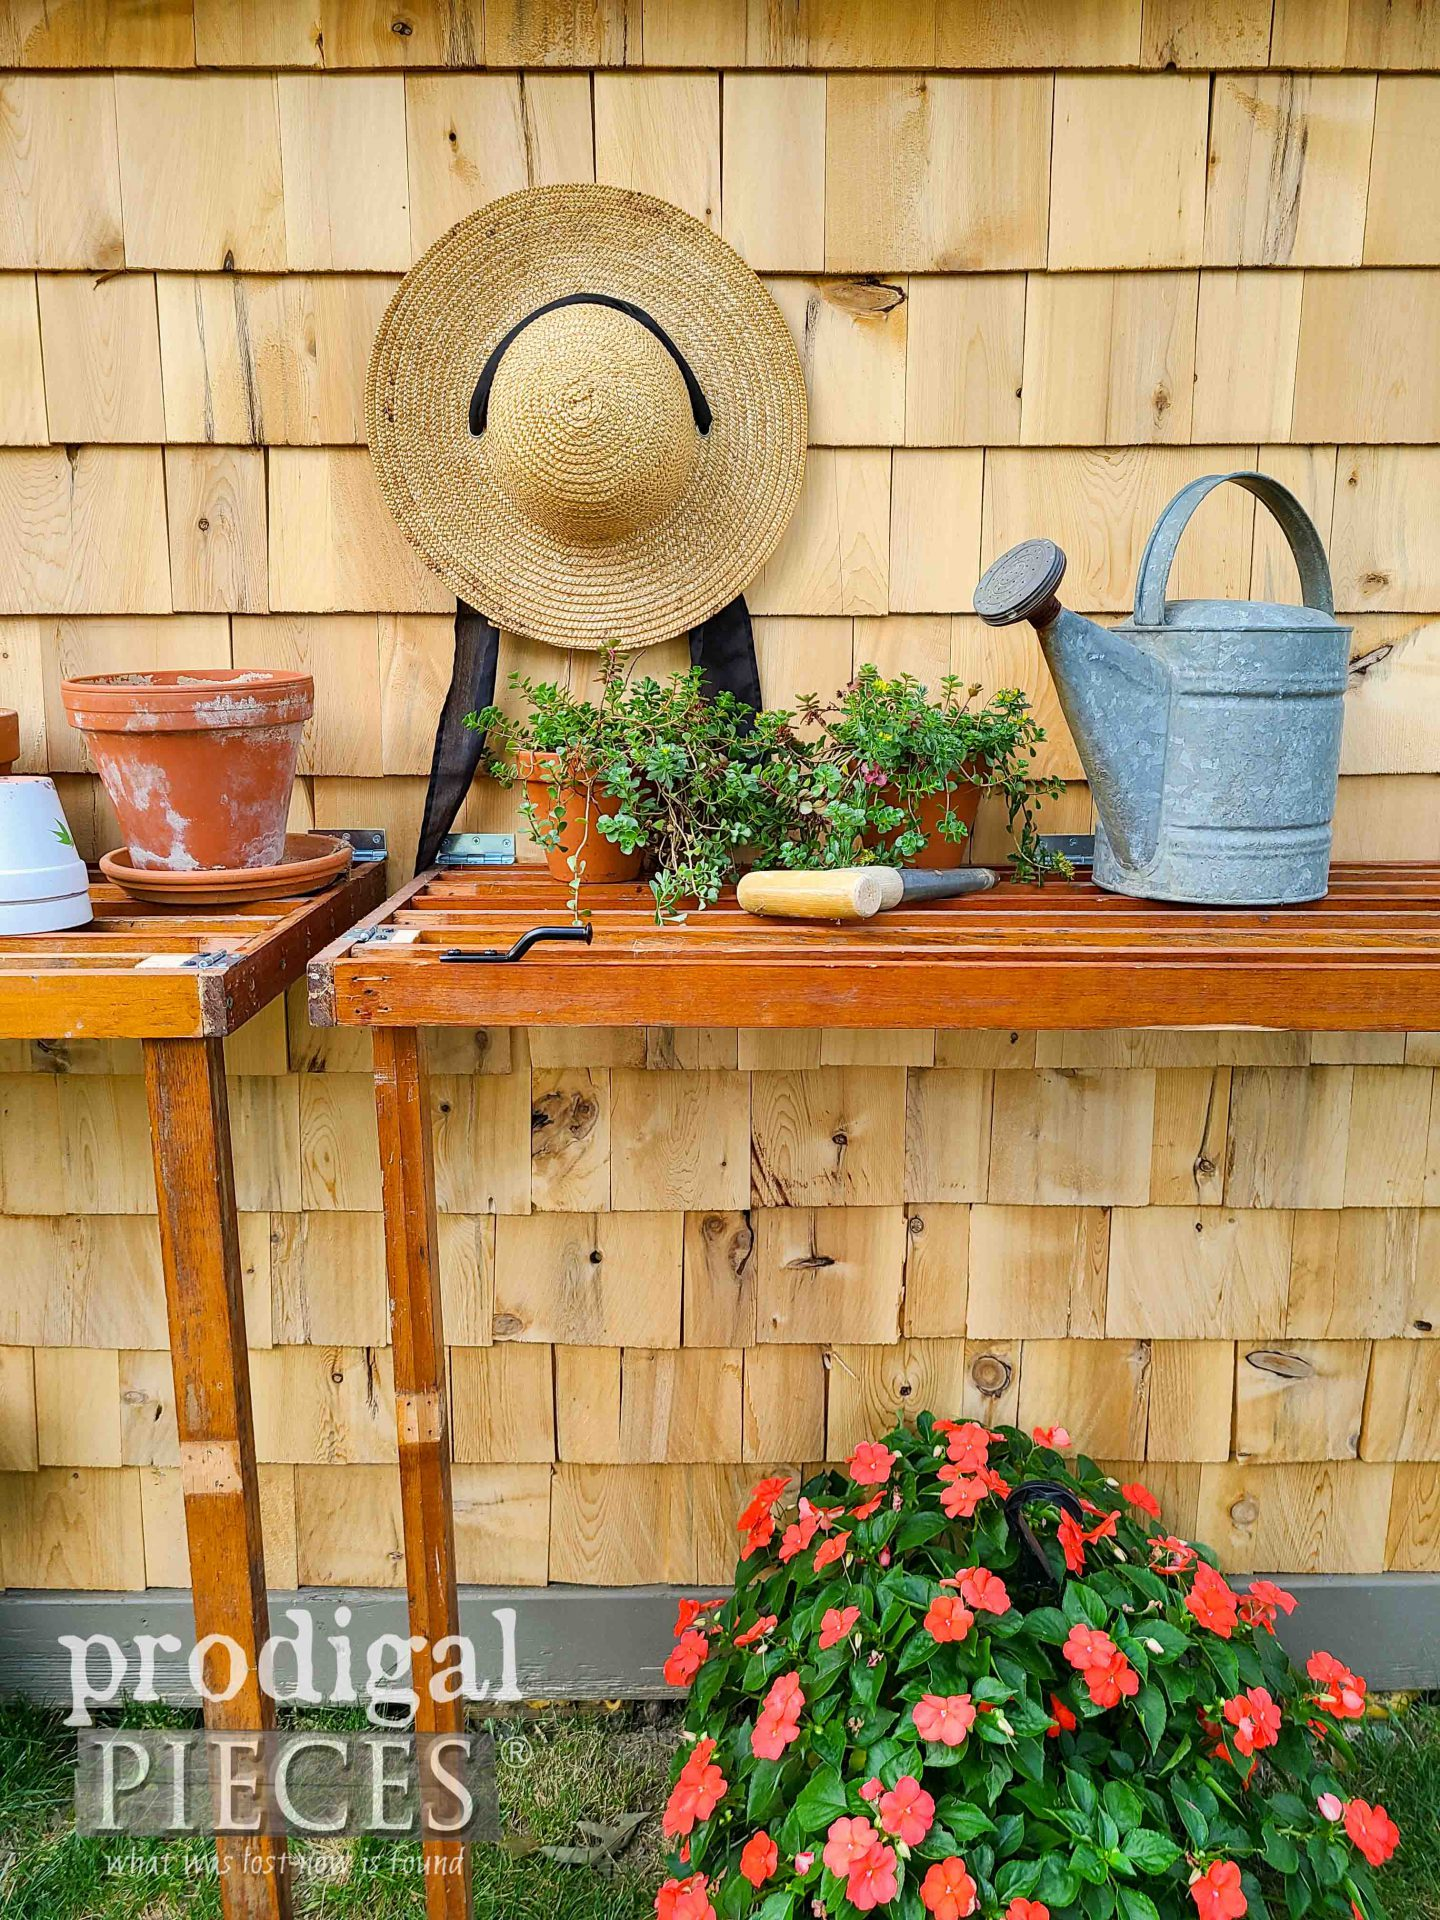 Reclaimed DIY Folding Potting Bench built by Larissa of Prodigal Pieces | prodigalpieces.com #prodigalpieces #diy #home #garden #homesteading